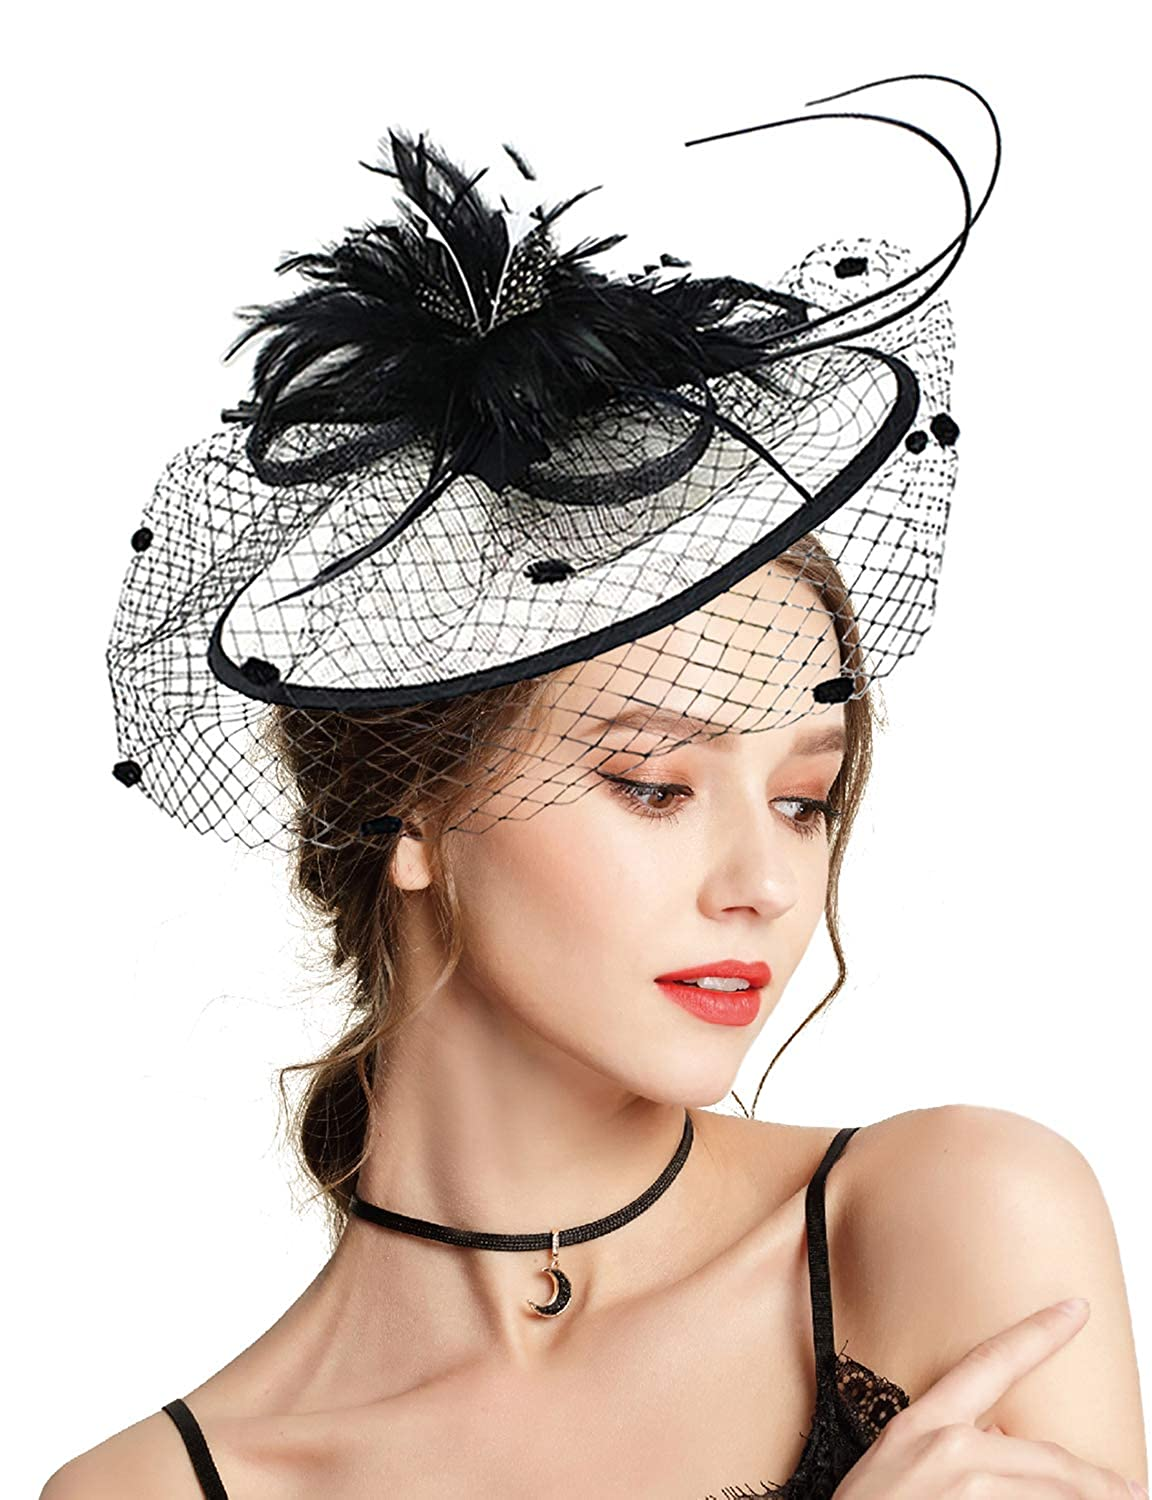 ac77c17d5bb Z X Fascinator with Headband Derby Party Feather Floral Mesh Pillbox Hat  Black at Amazon Women s Clothing store